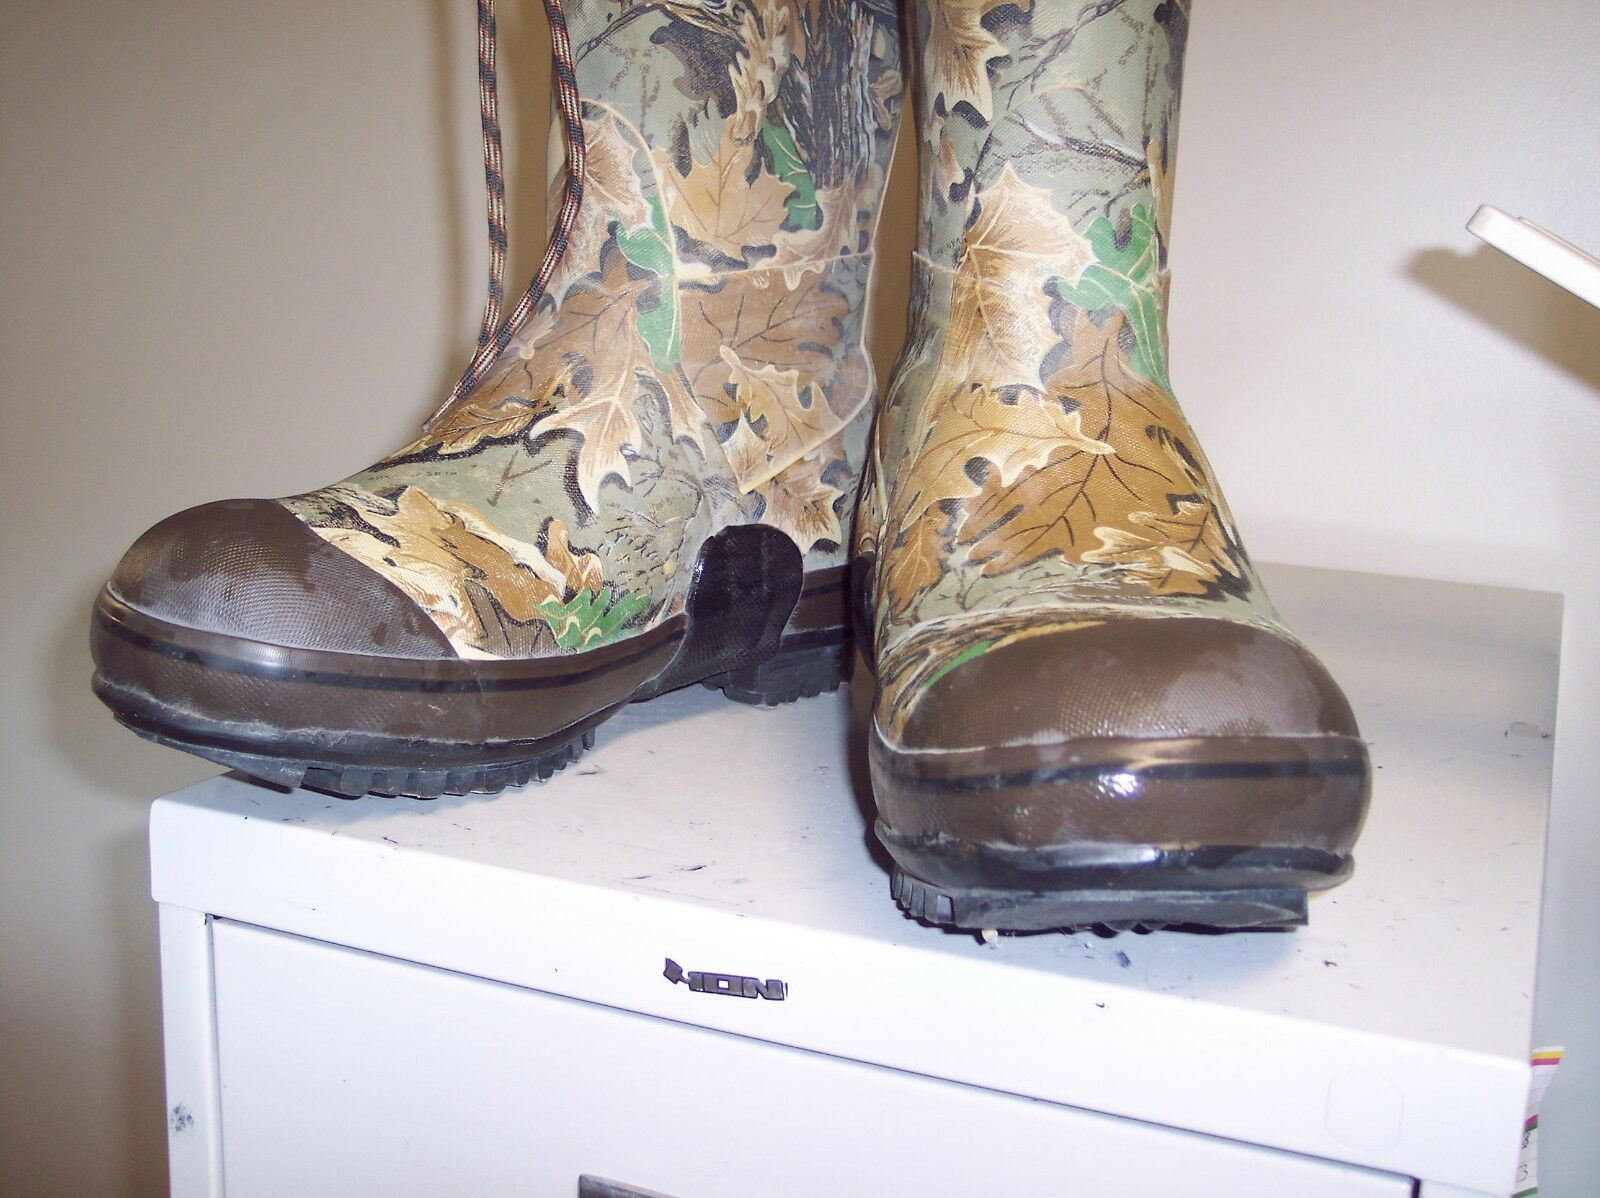 ROCKY RUBBER HUNTING BOOTS STEEL SHANK SIZE 12 THINSULATE ON SALE